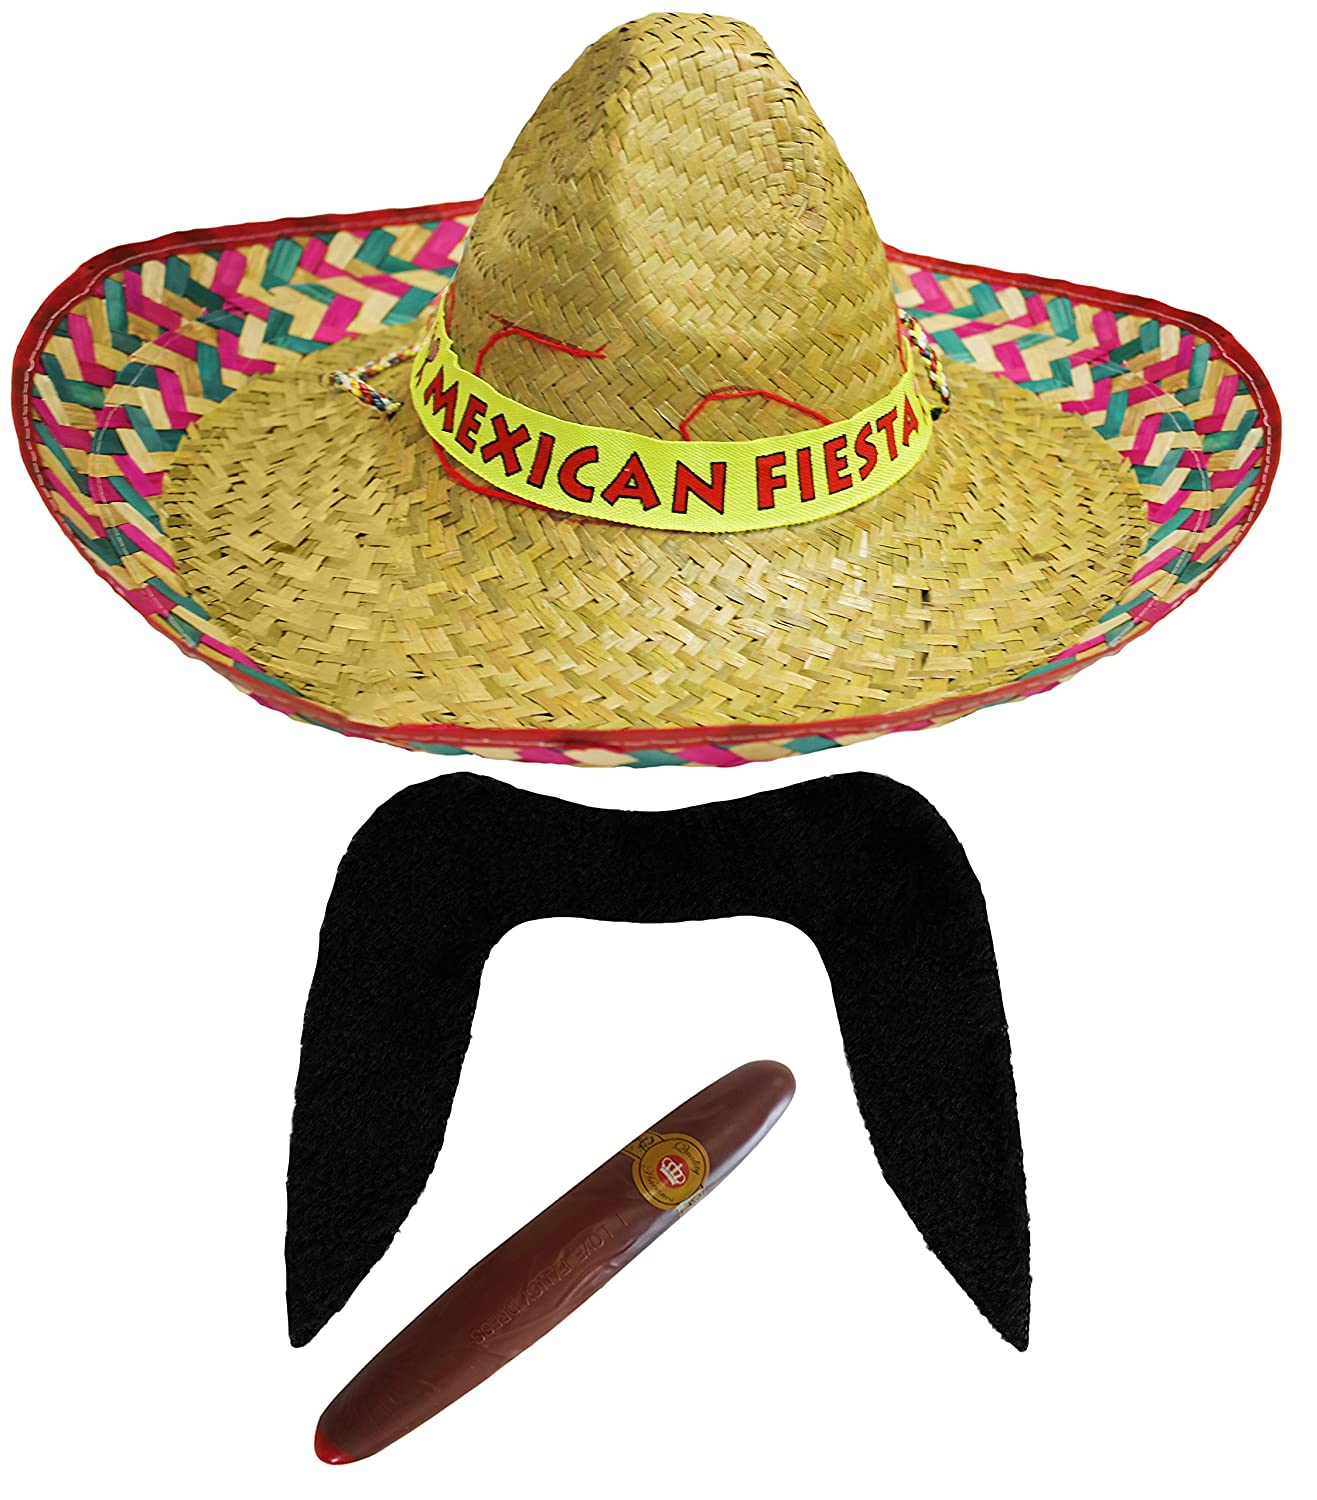 e42f2b52314d LADIES MEXICAN SOMBRERO WITH MEXICAN FIESTA BAND SOMBRERO + MOUSTACHE +  JUMBO CIGAR NOVELTY FANCY DRESS ACCESSORY FANCY DRESS COSTUME SET